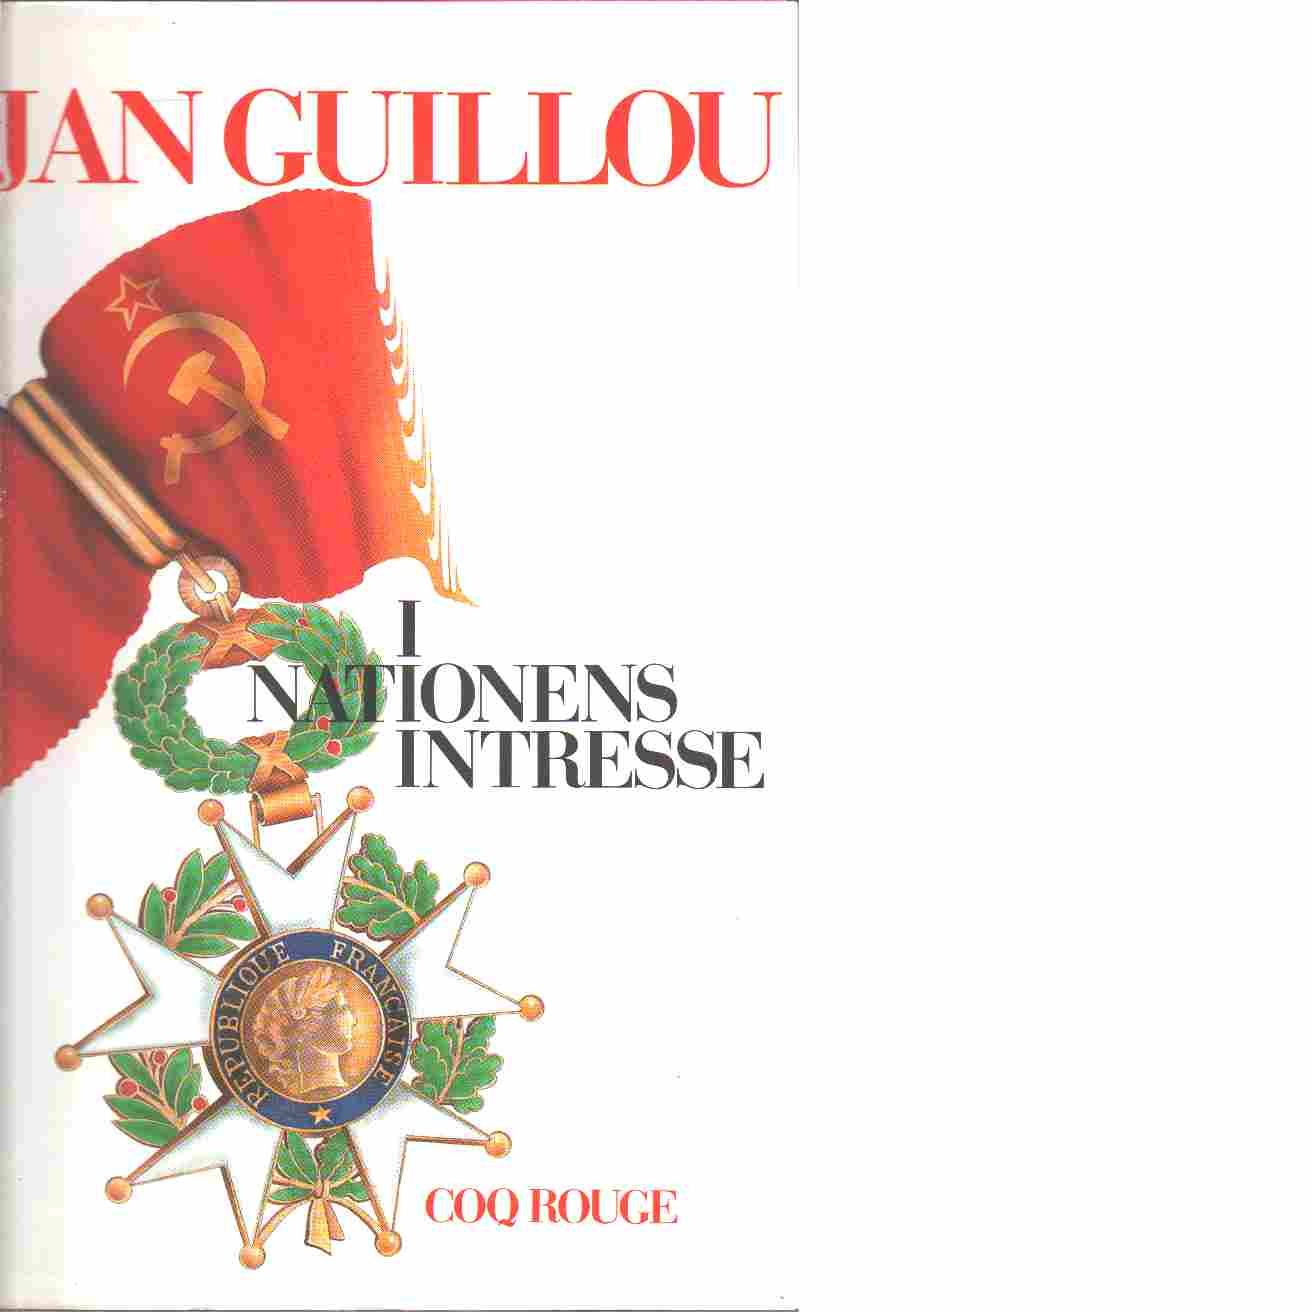 I nationens intresse : Coq Rouge - Guillou, Jan